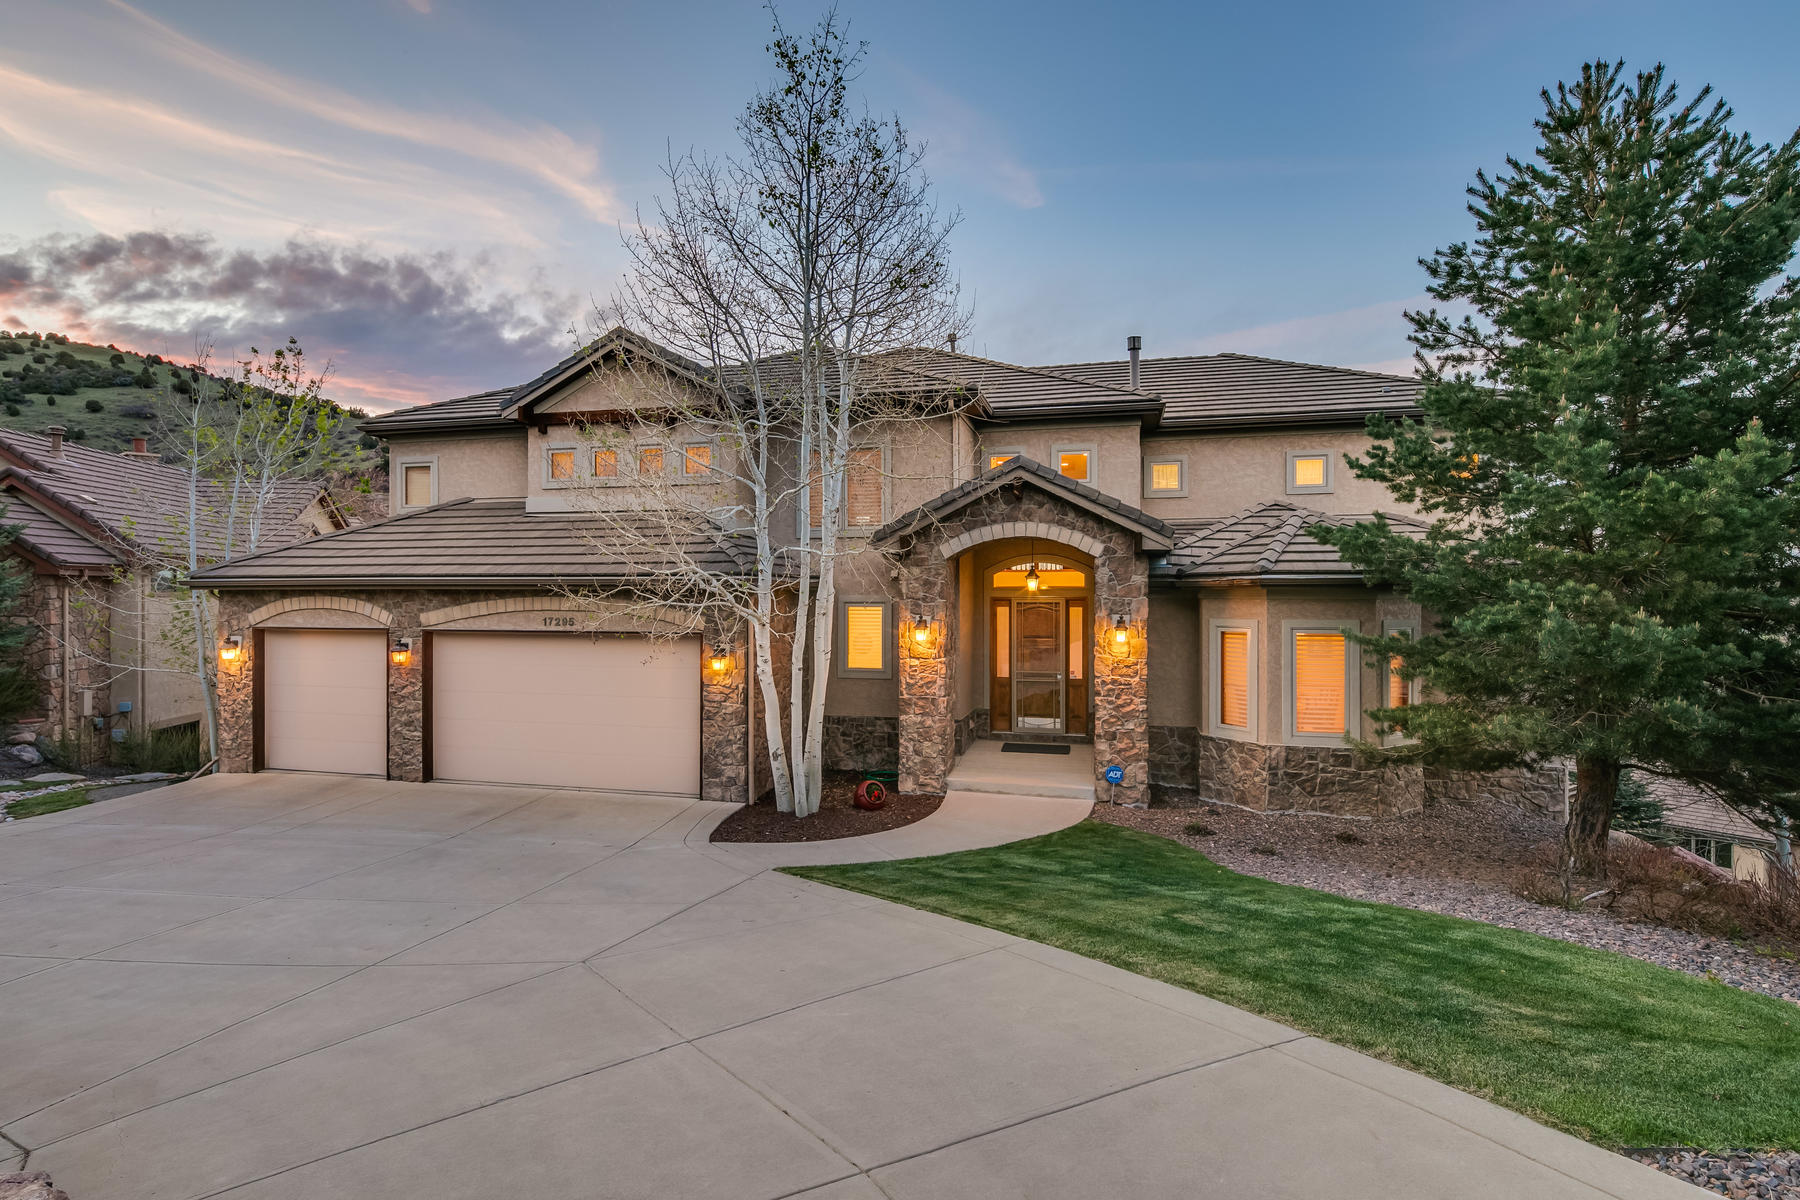 Single Family Homes for Sale at Very Special Location, Views, & Architecture 17295 Red Wolf Lane Morrison, Colorado 80465 United States